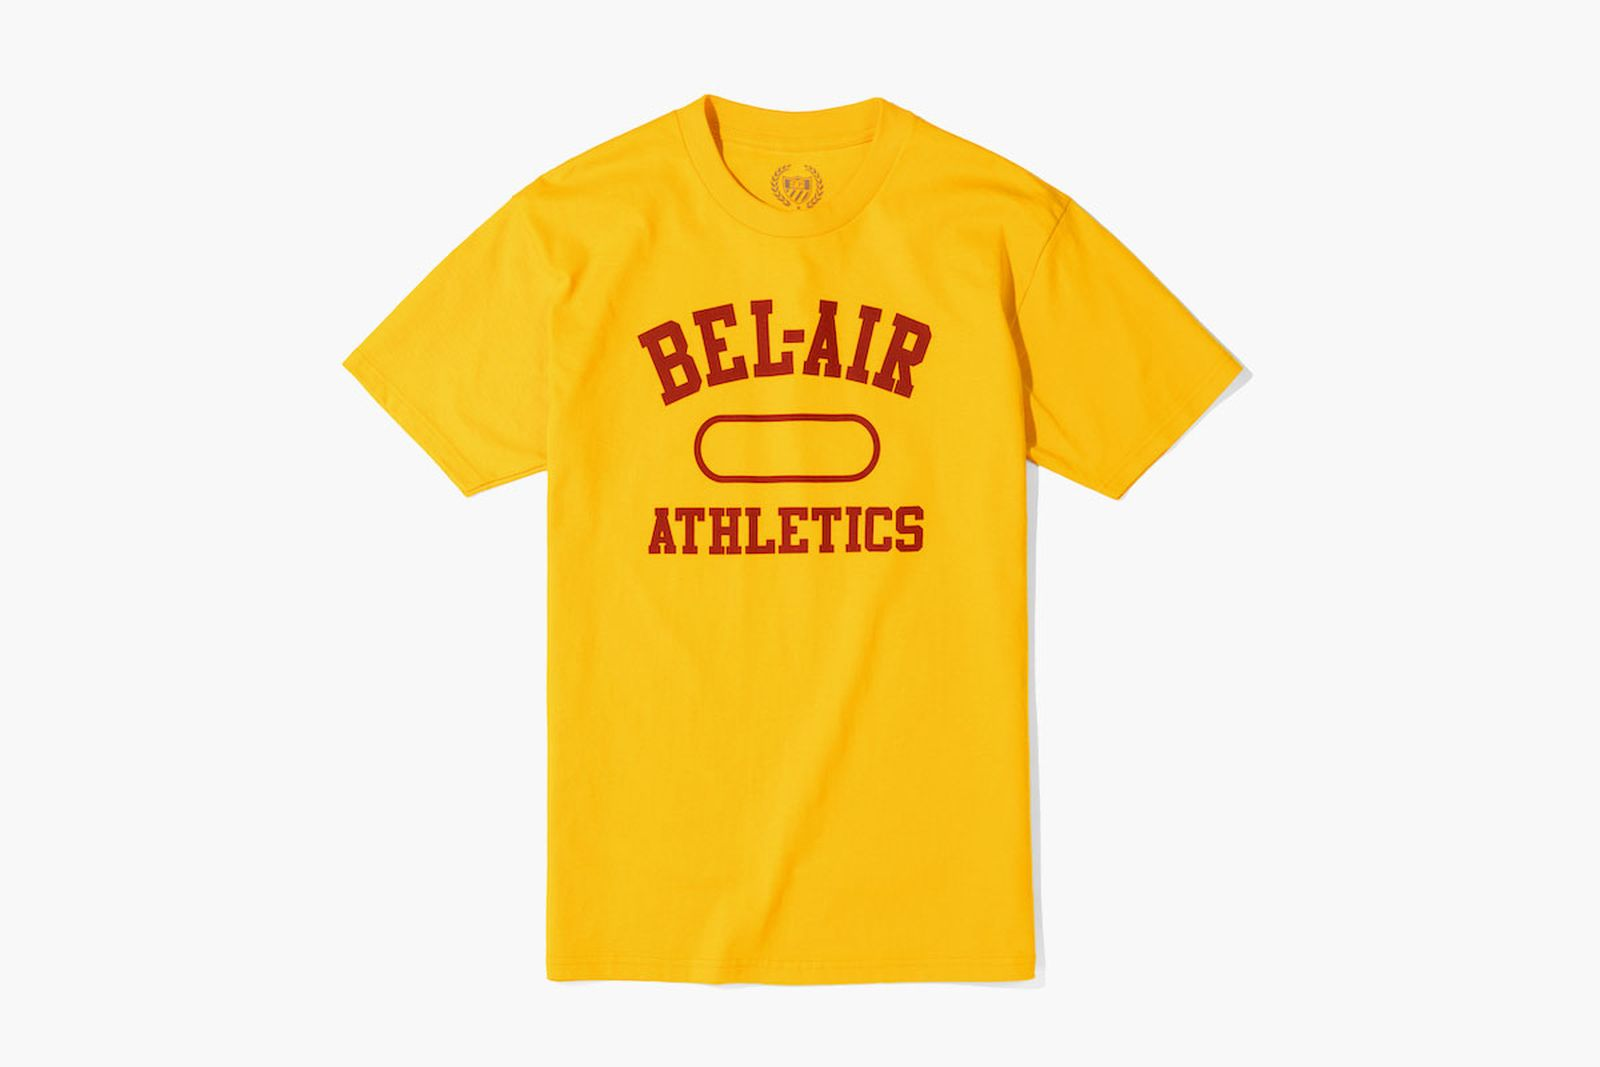 will smith bel air athletics merch the fresh prince of bel-air